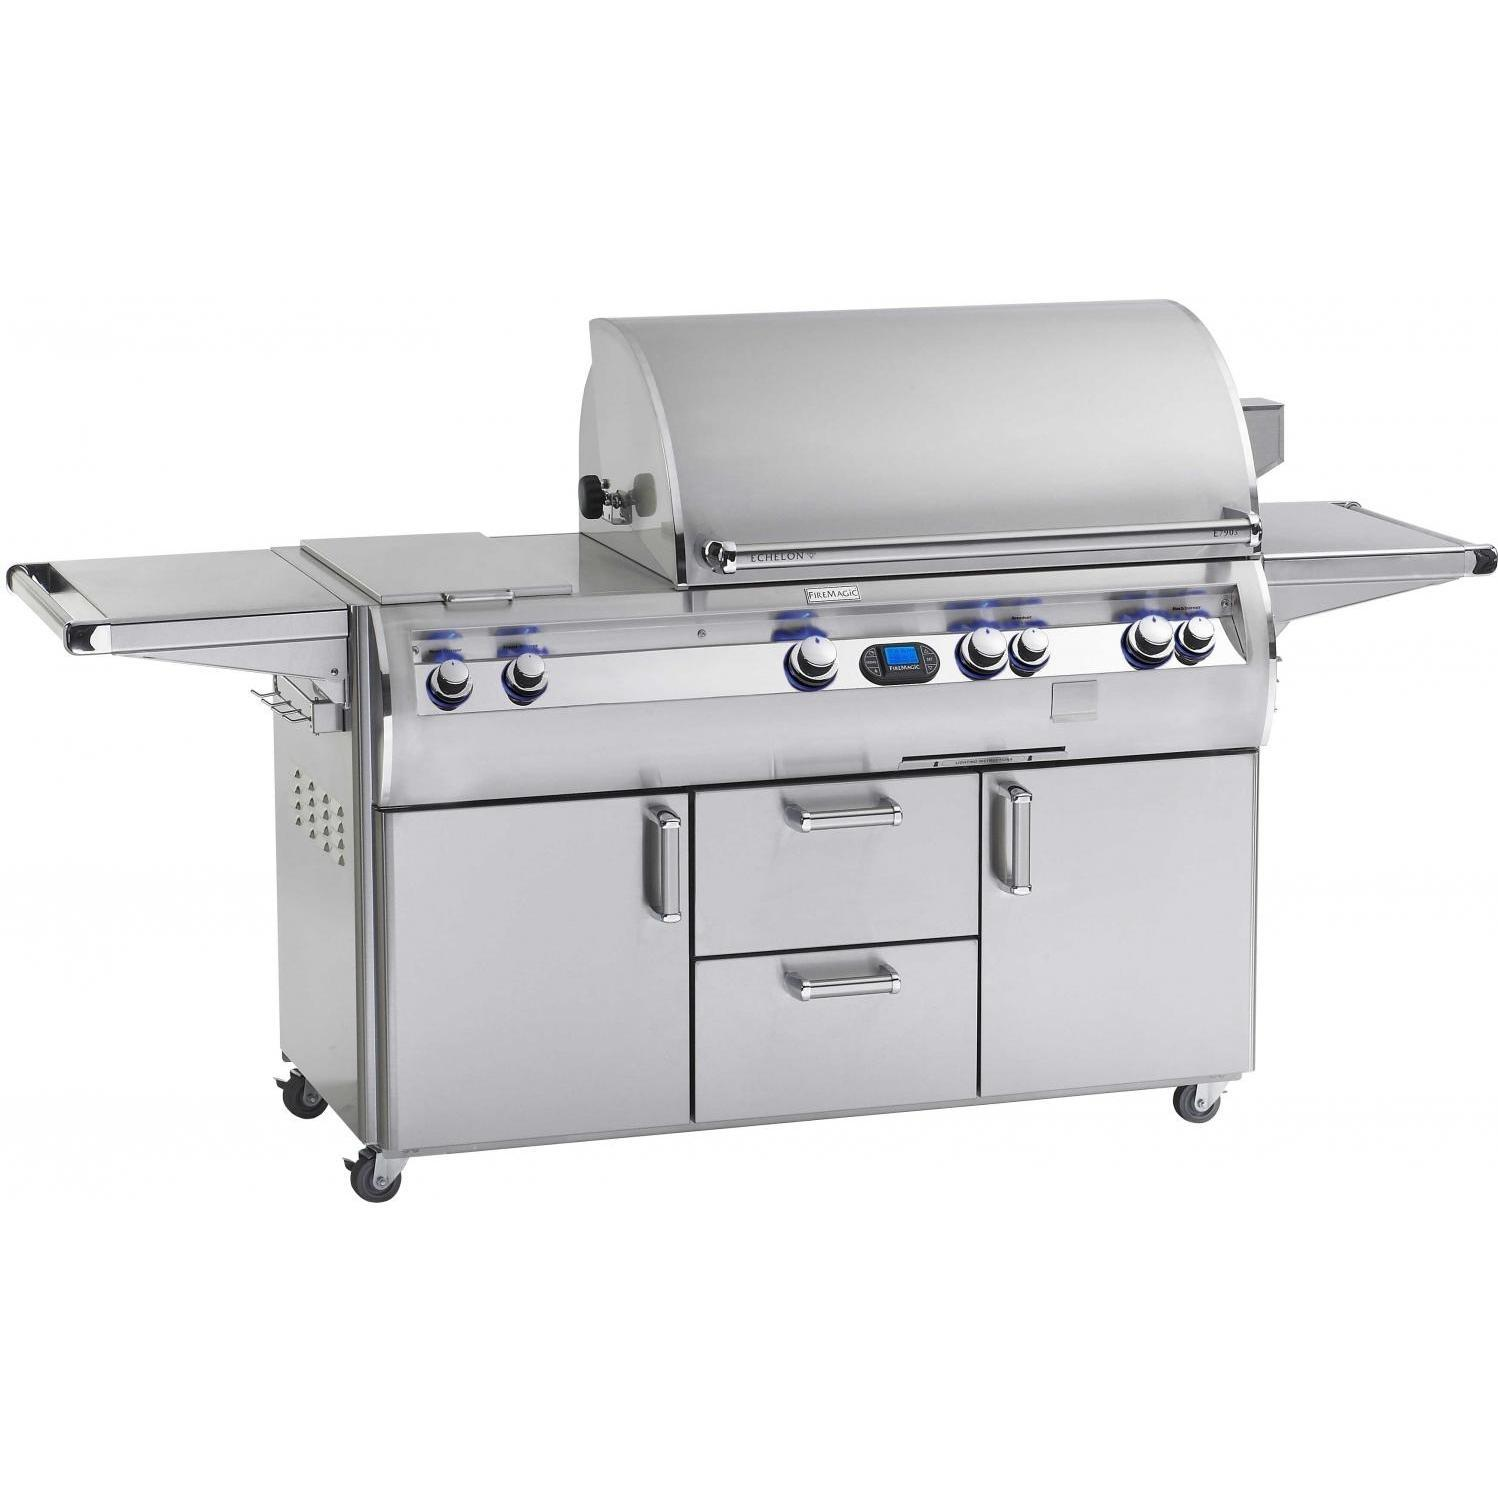 Fire Magic Echelon Diamond E660s All Infrared Propane Gas Grill With Double Side Burner And Power Hood On Cart at Sears.com